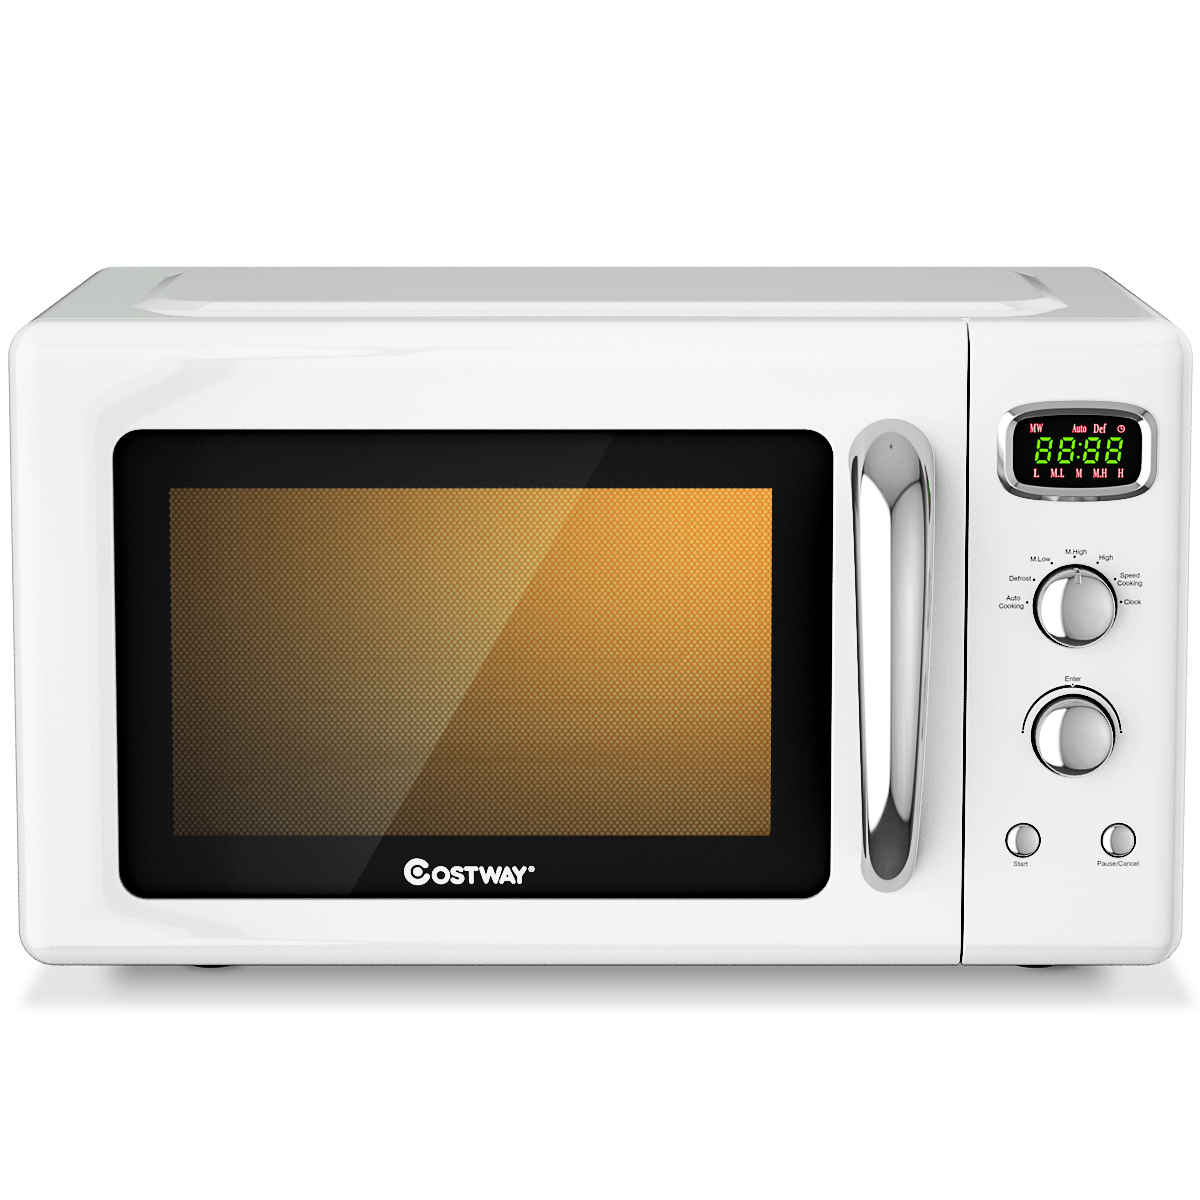 costway 0 9cu ft retro countertop compact microwave oven 900w 8 cooking settings blackgreenwhite